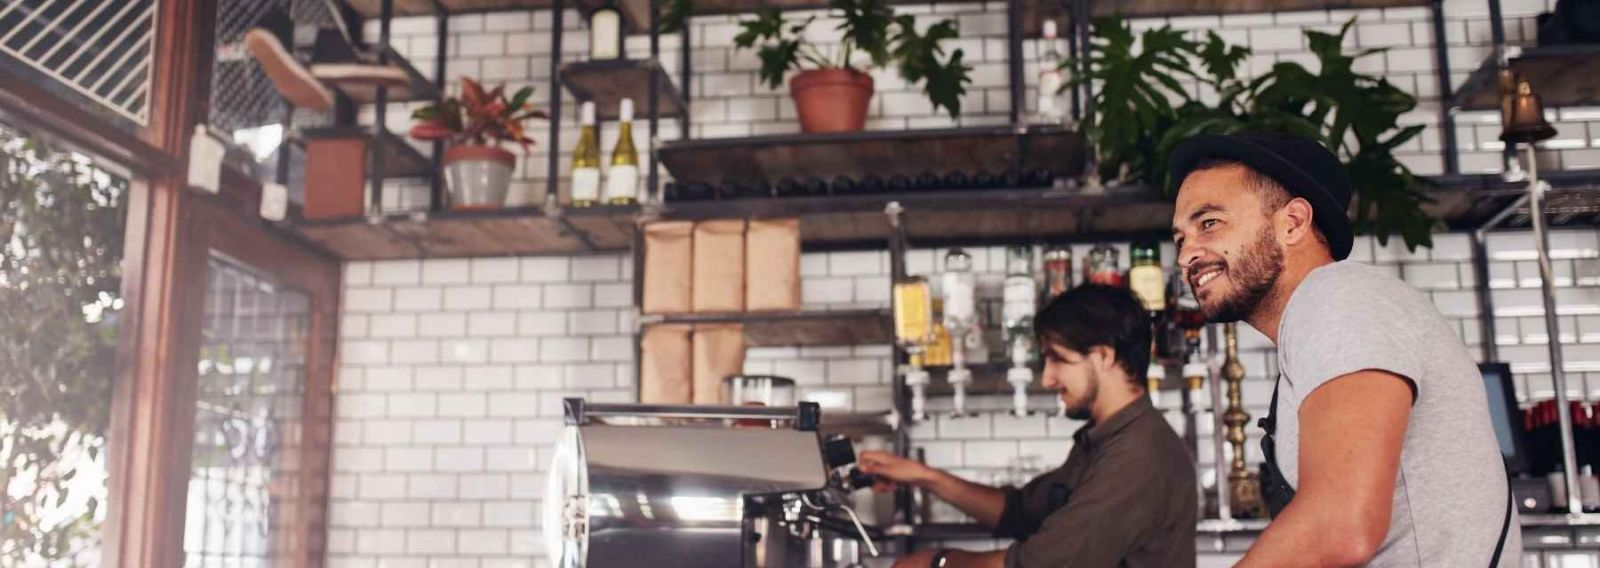 two men working behind the counter at a bar